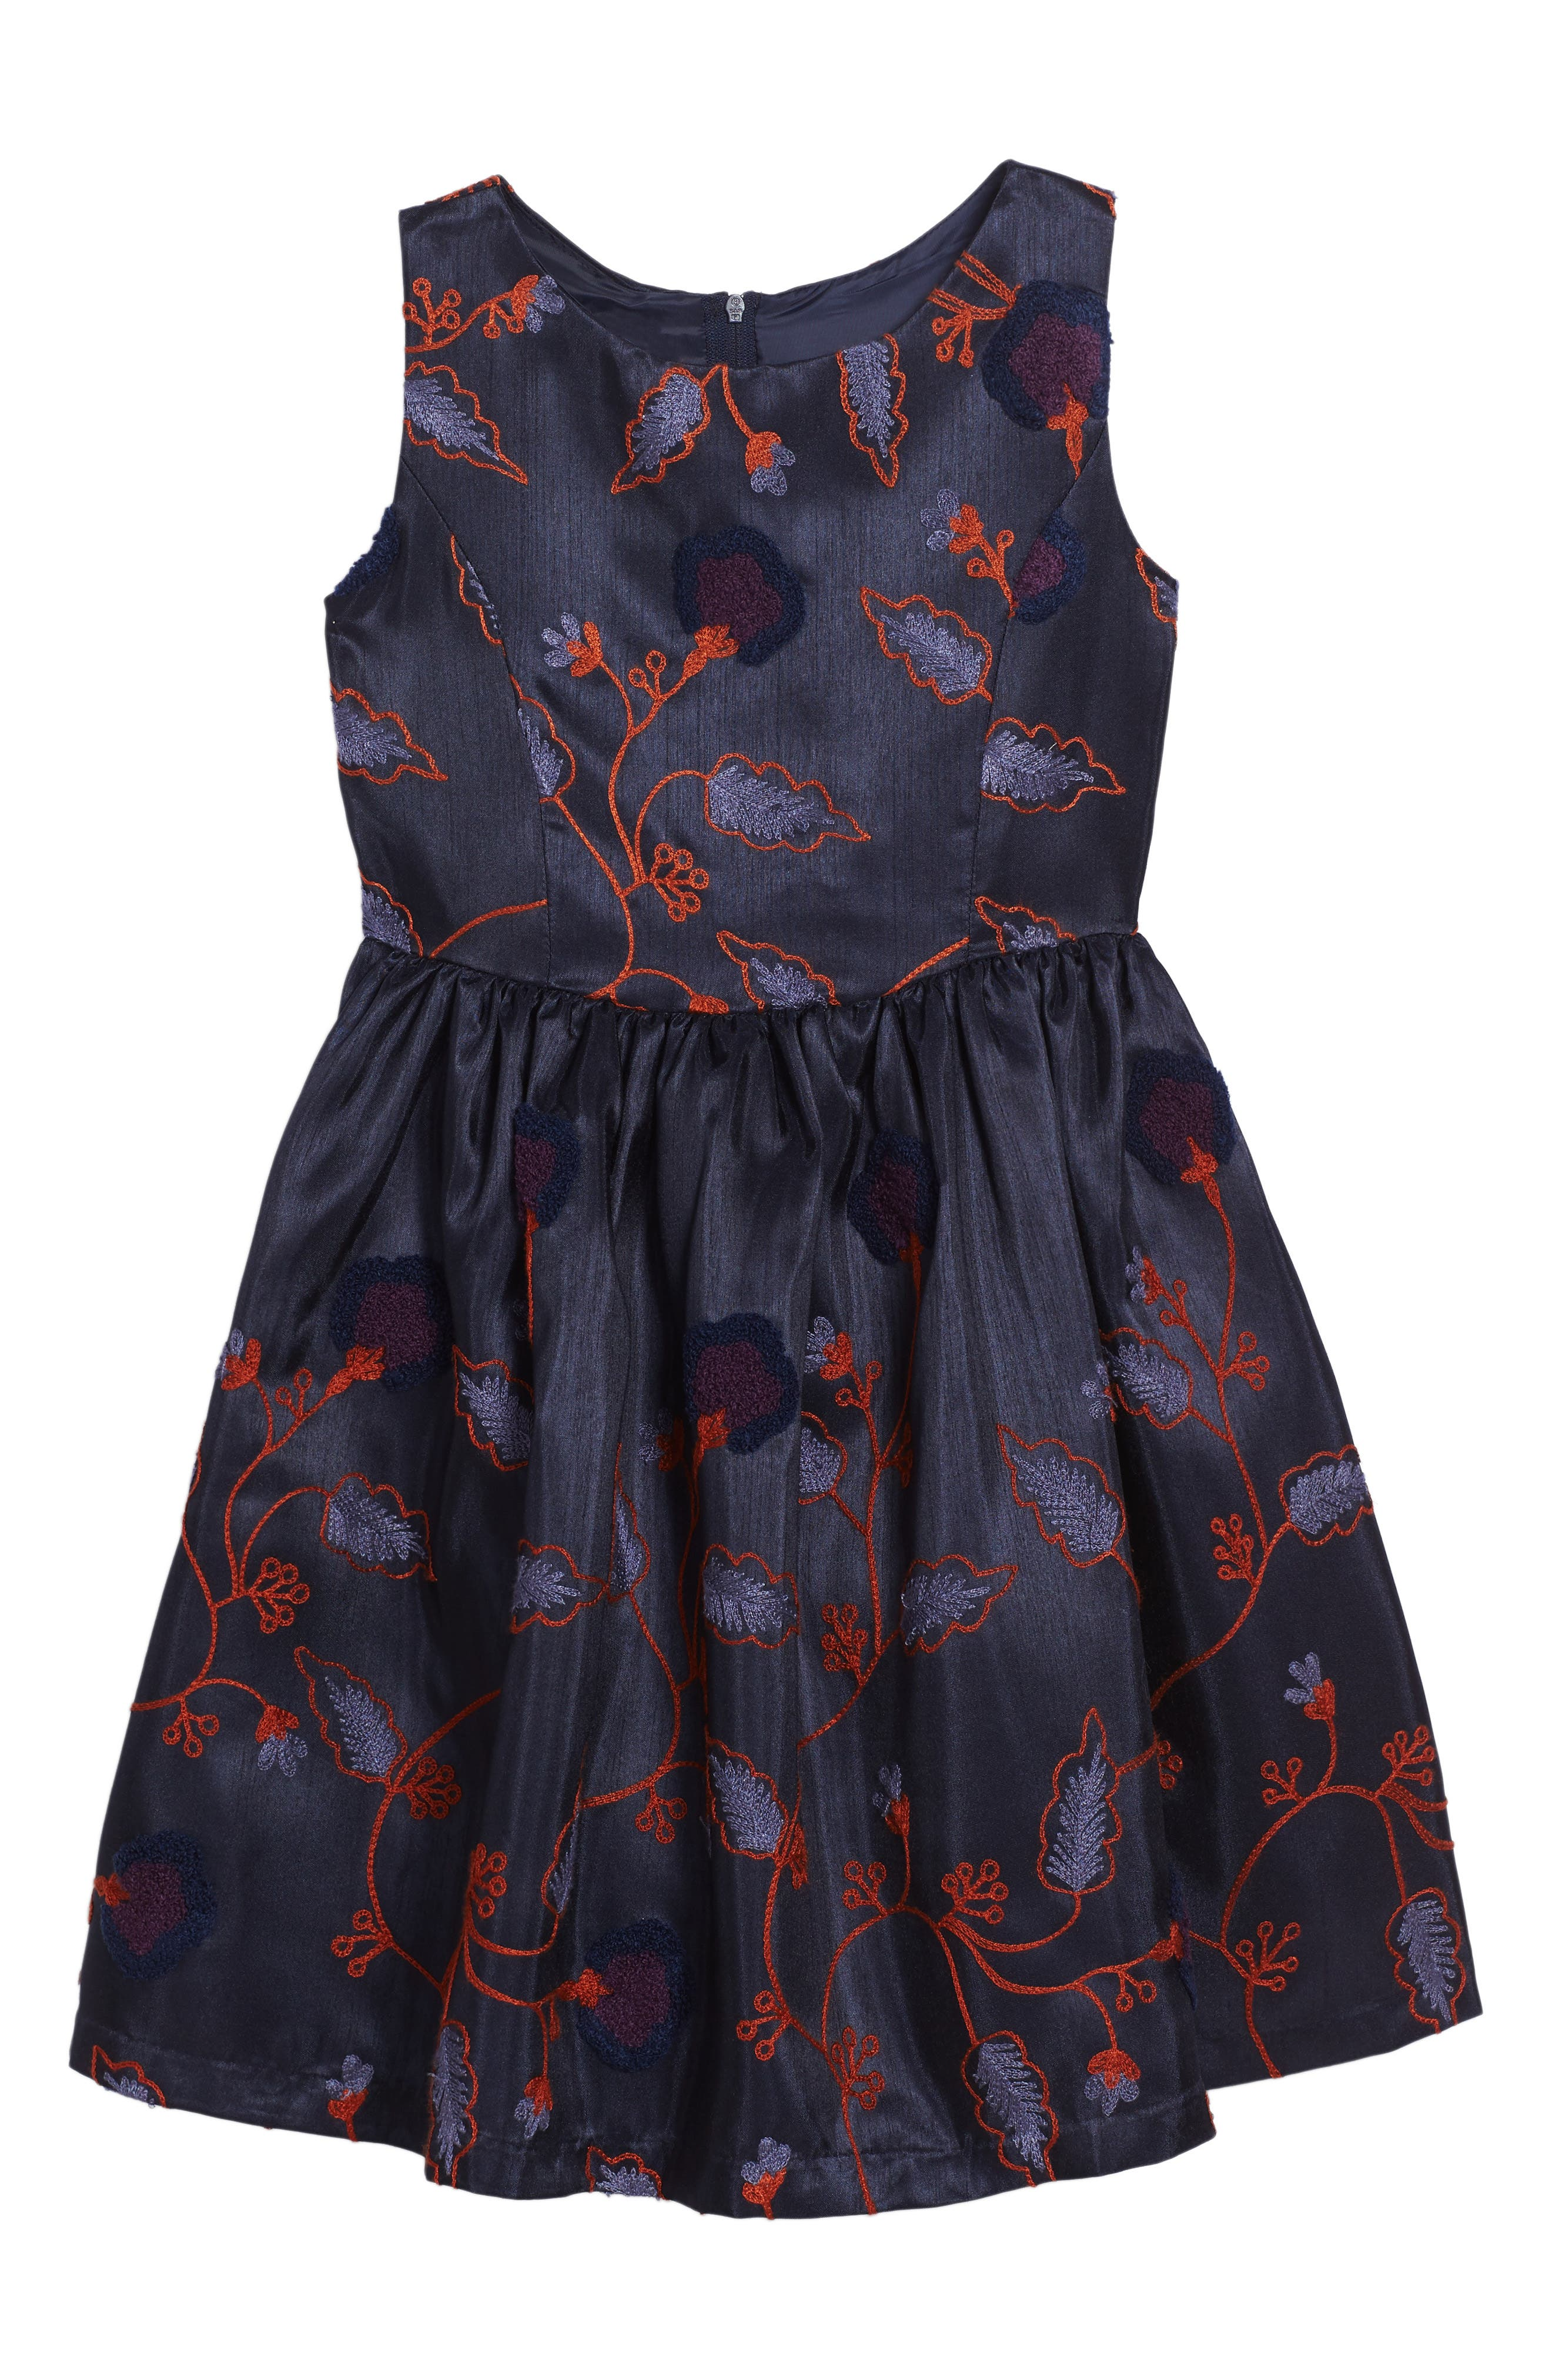 Embroidered Floral Dress,                             Main thumbnail 1, color,                             Navy/ Orange